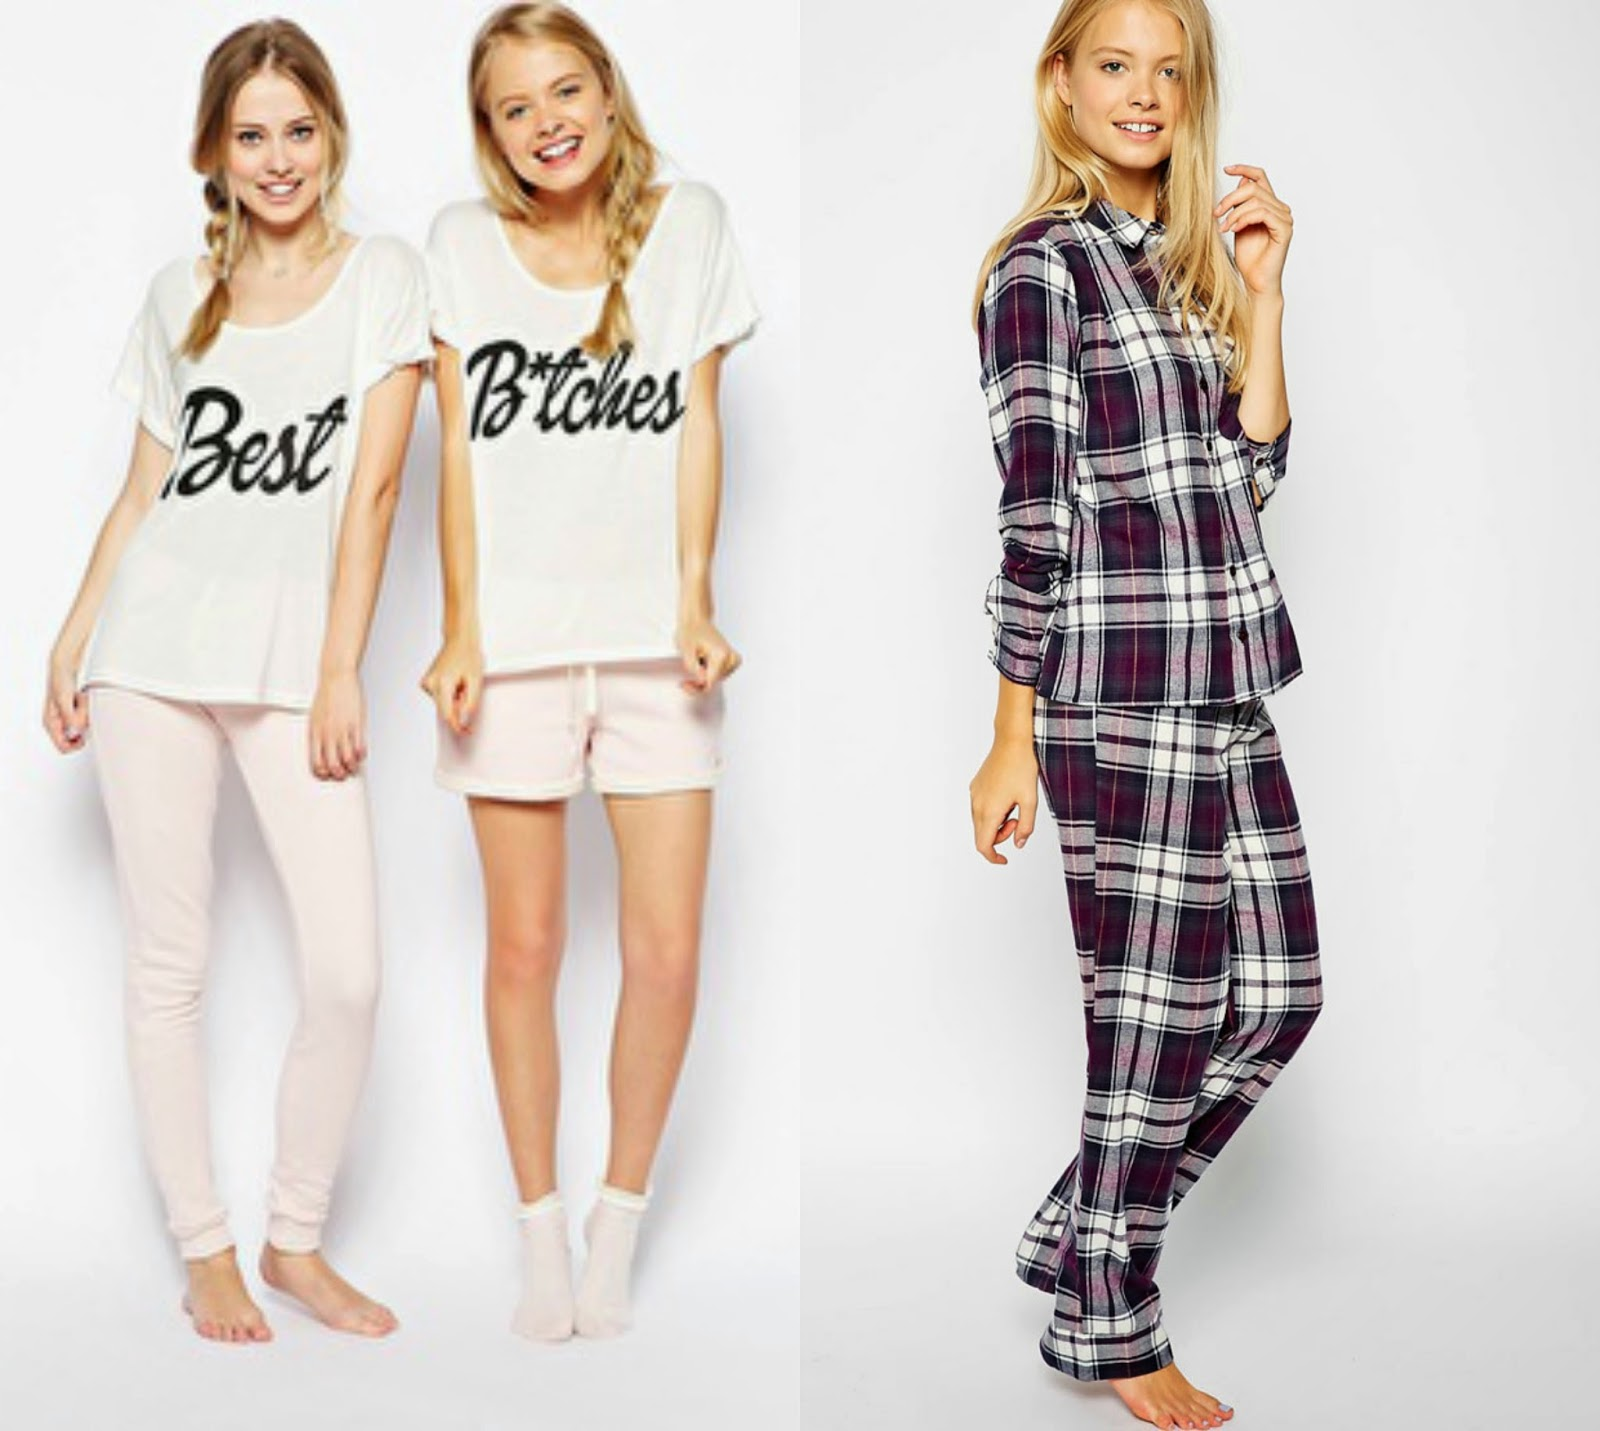 Best friend pyjamas